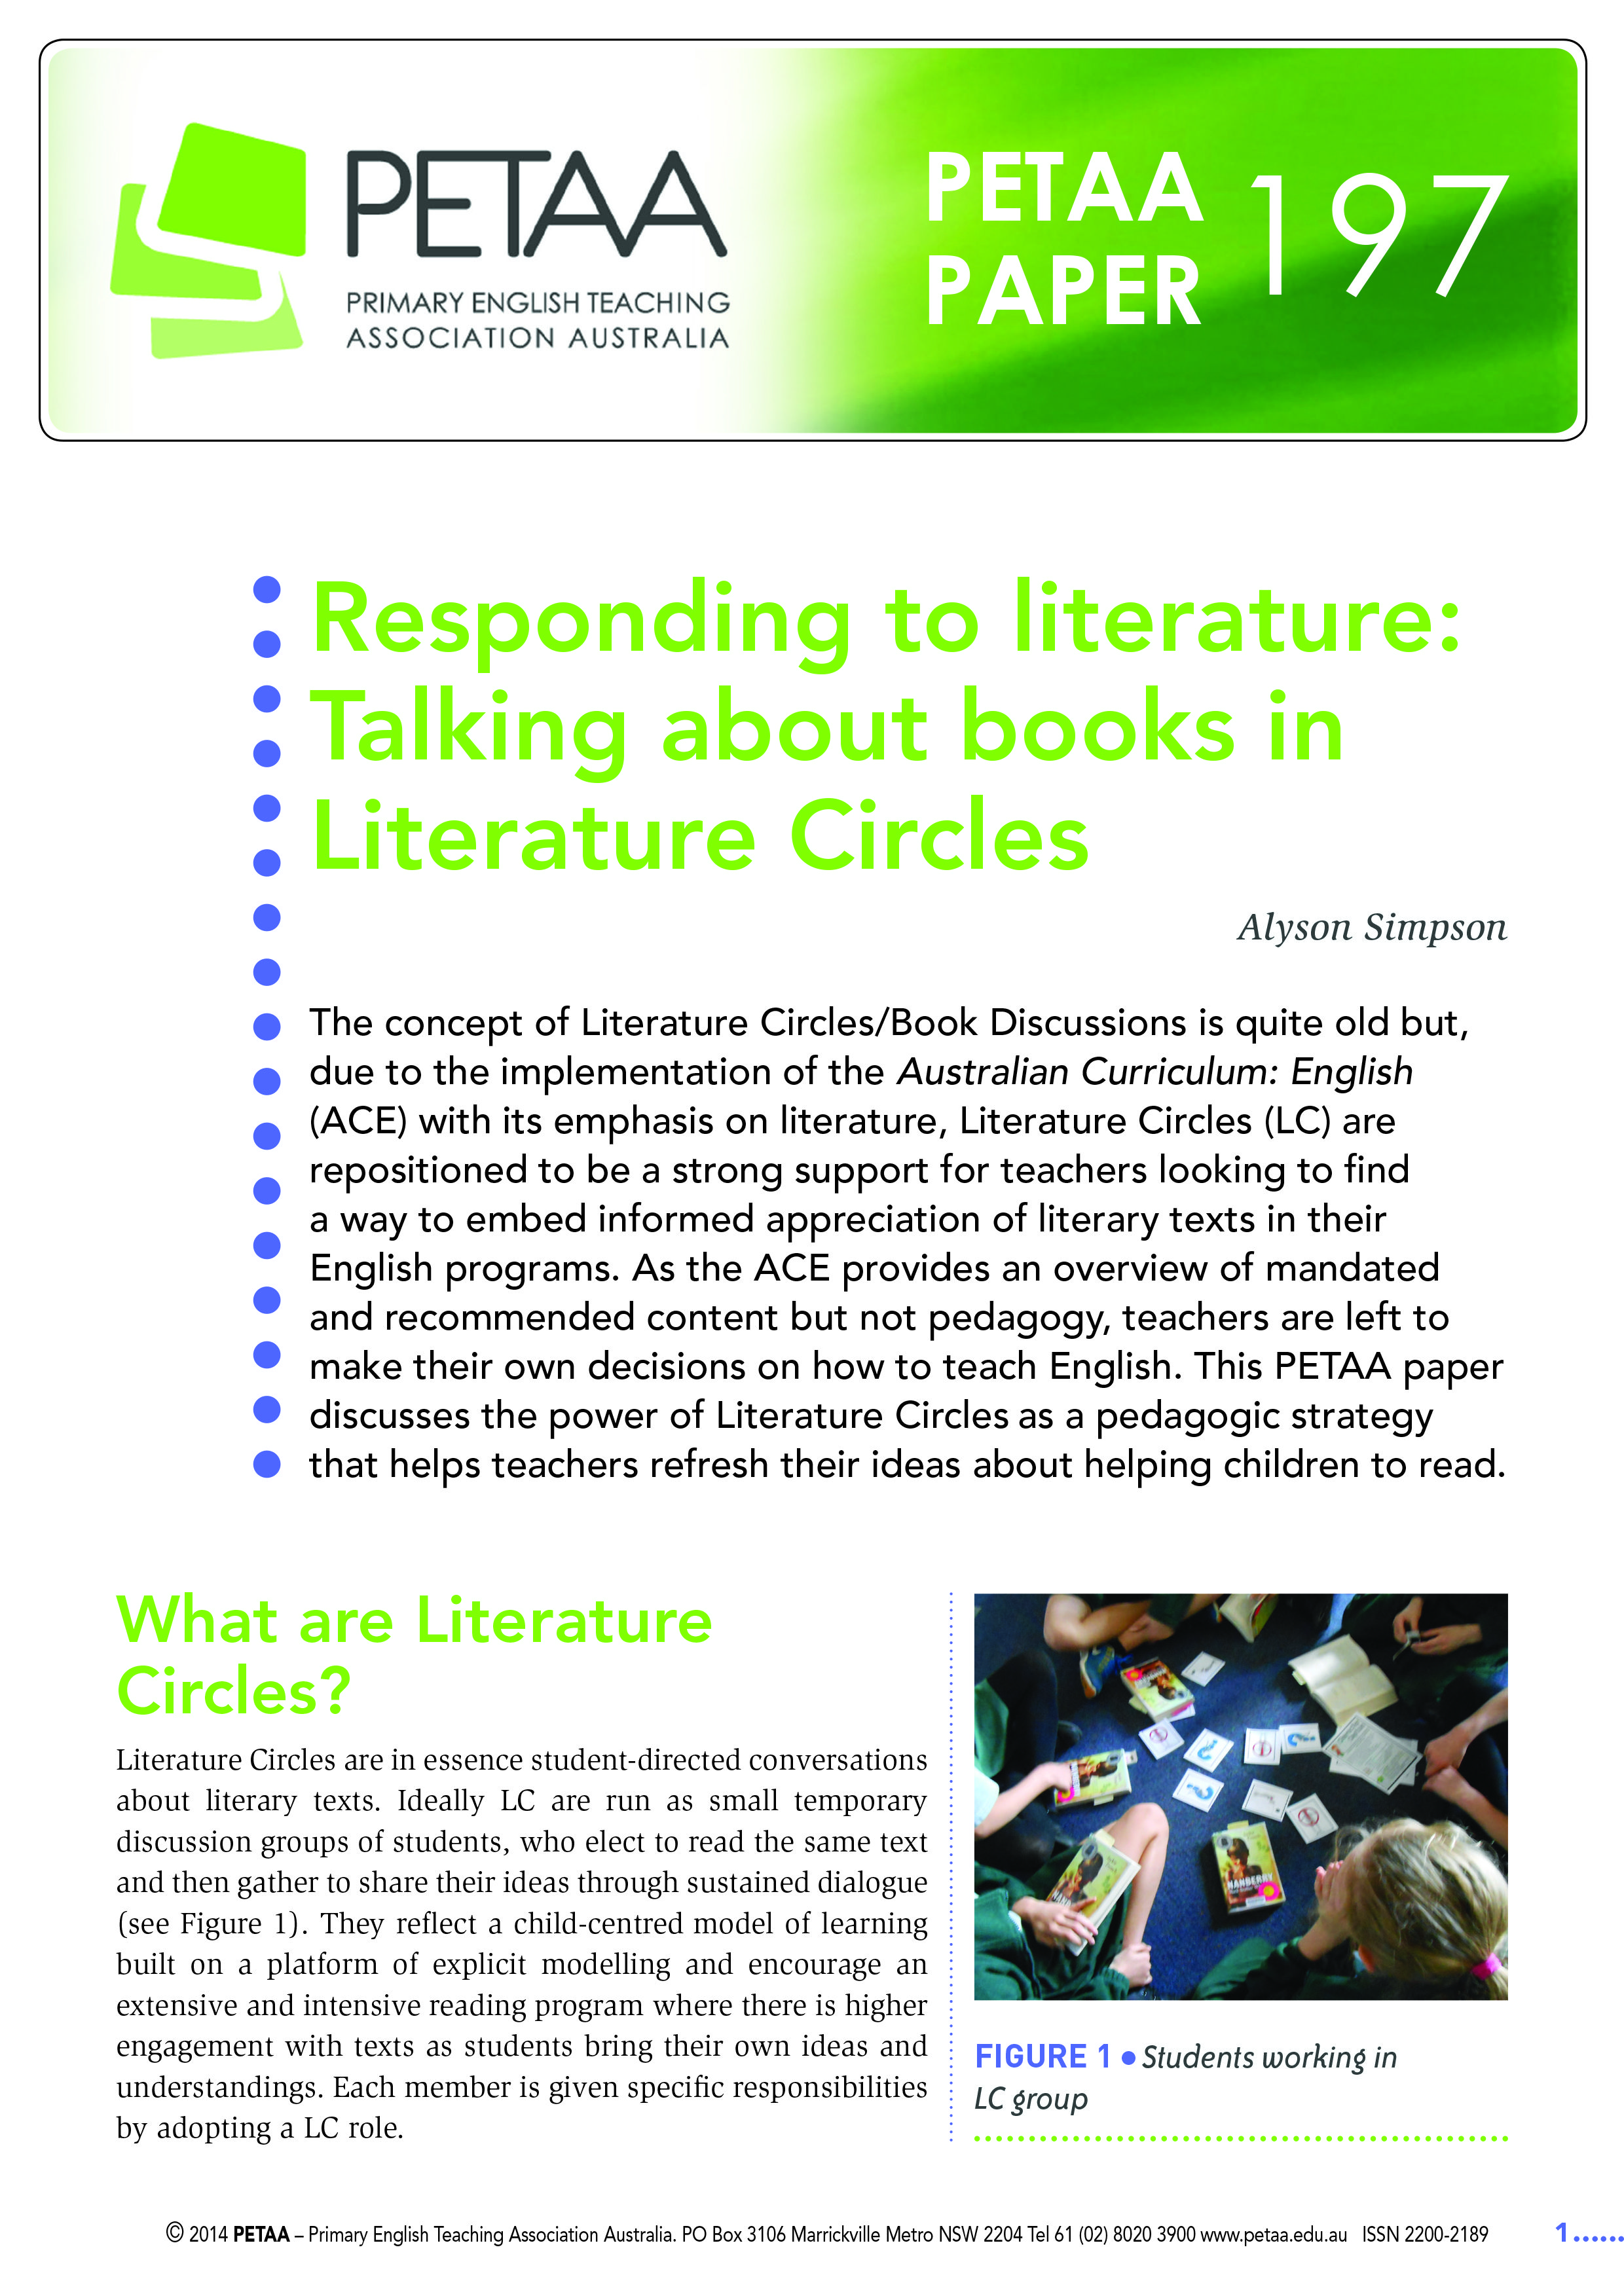 Petaa Paper 197 Responding To Literature Talking About Books In Literature Circles Alyson Si Literature Circles Primary English Teaching Teaching Resources [ 3507 x 2480 Pixel ]